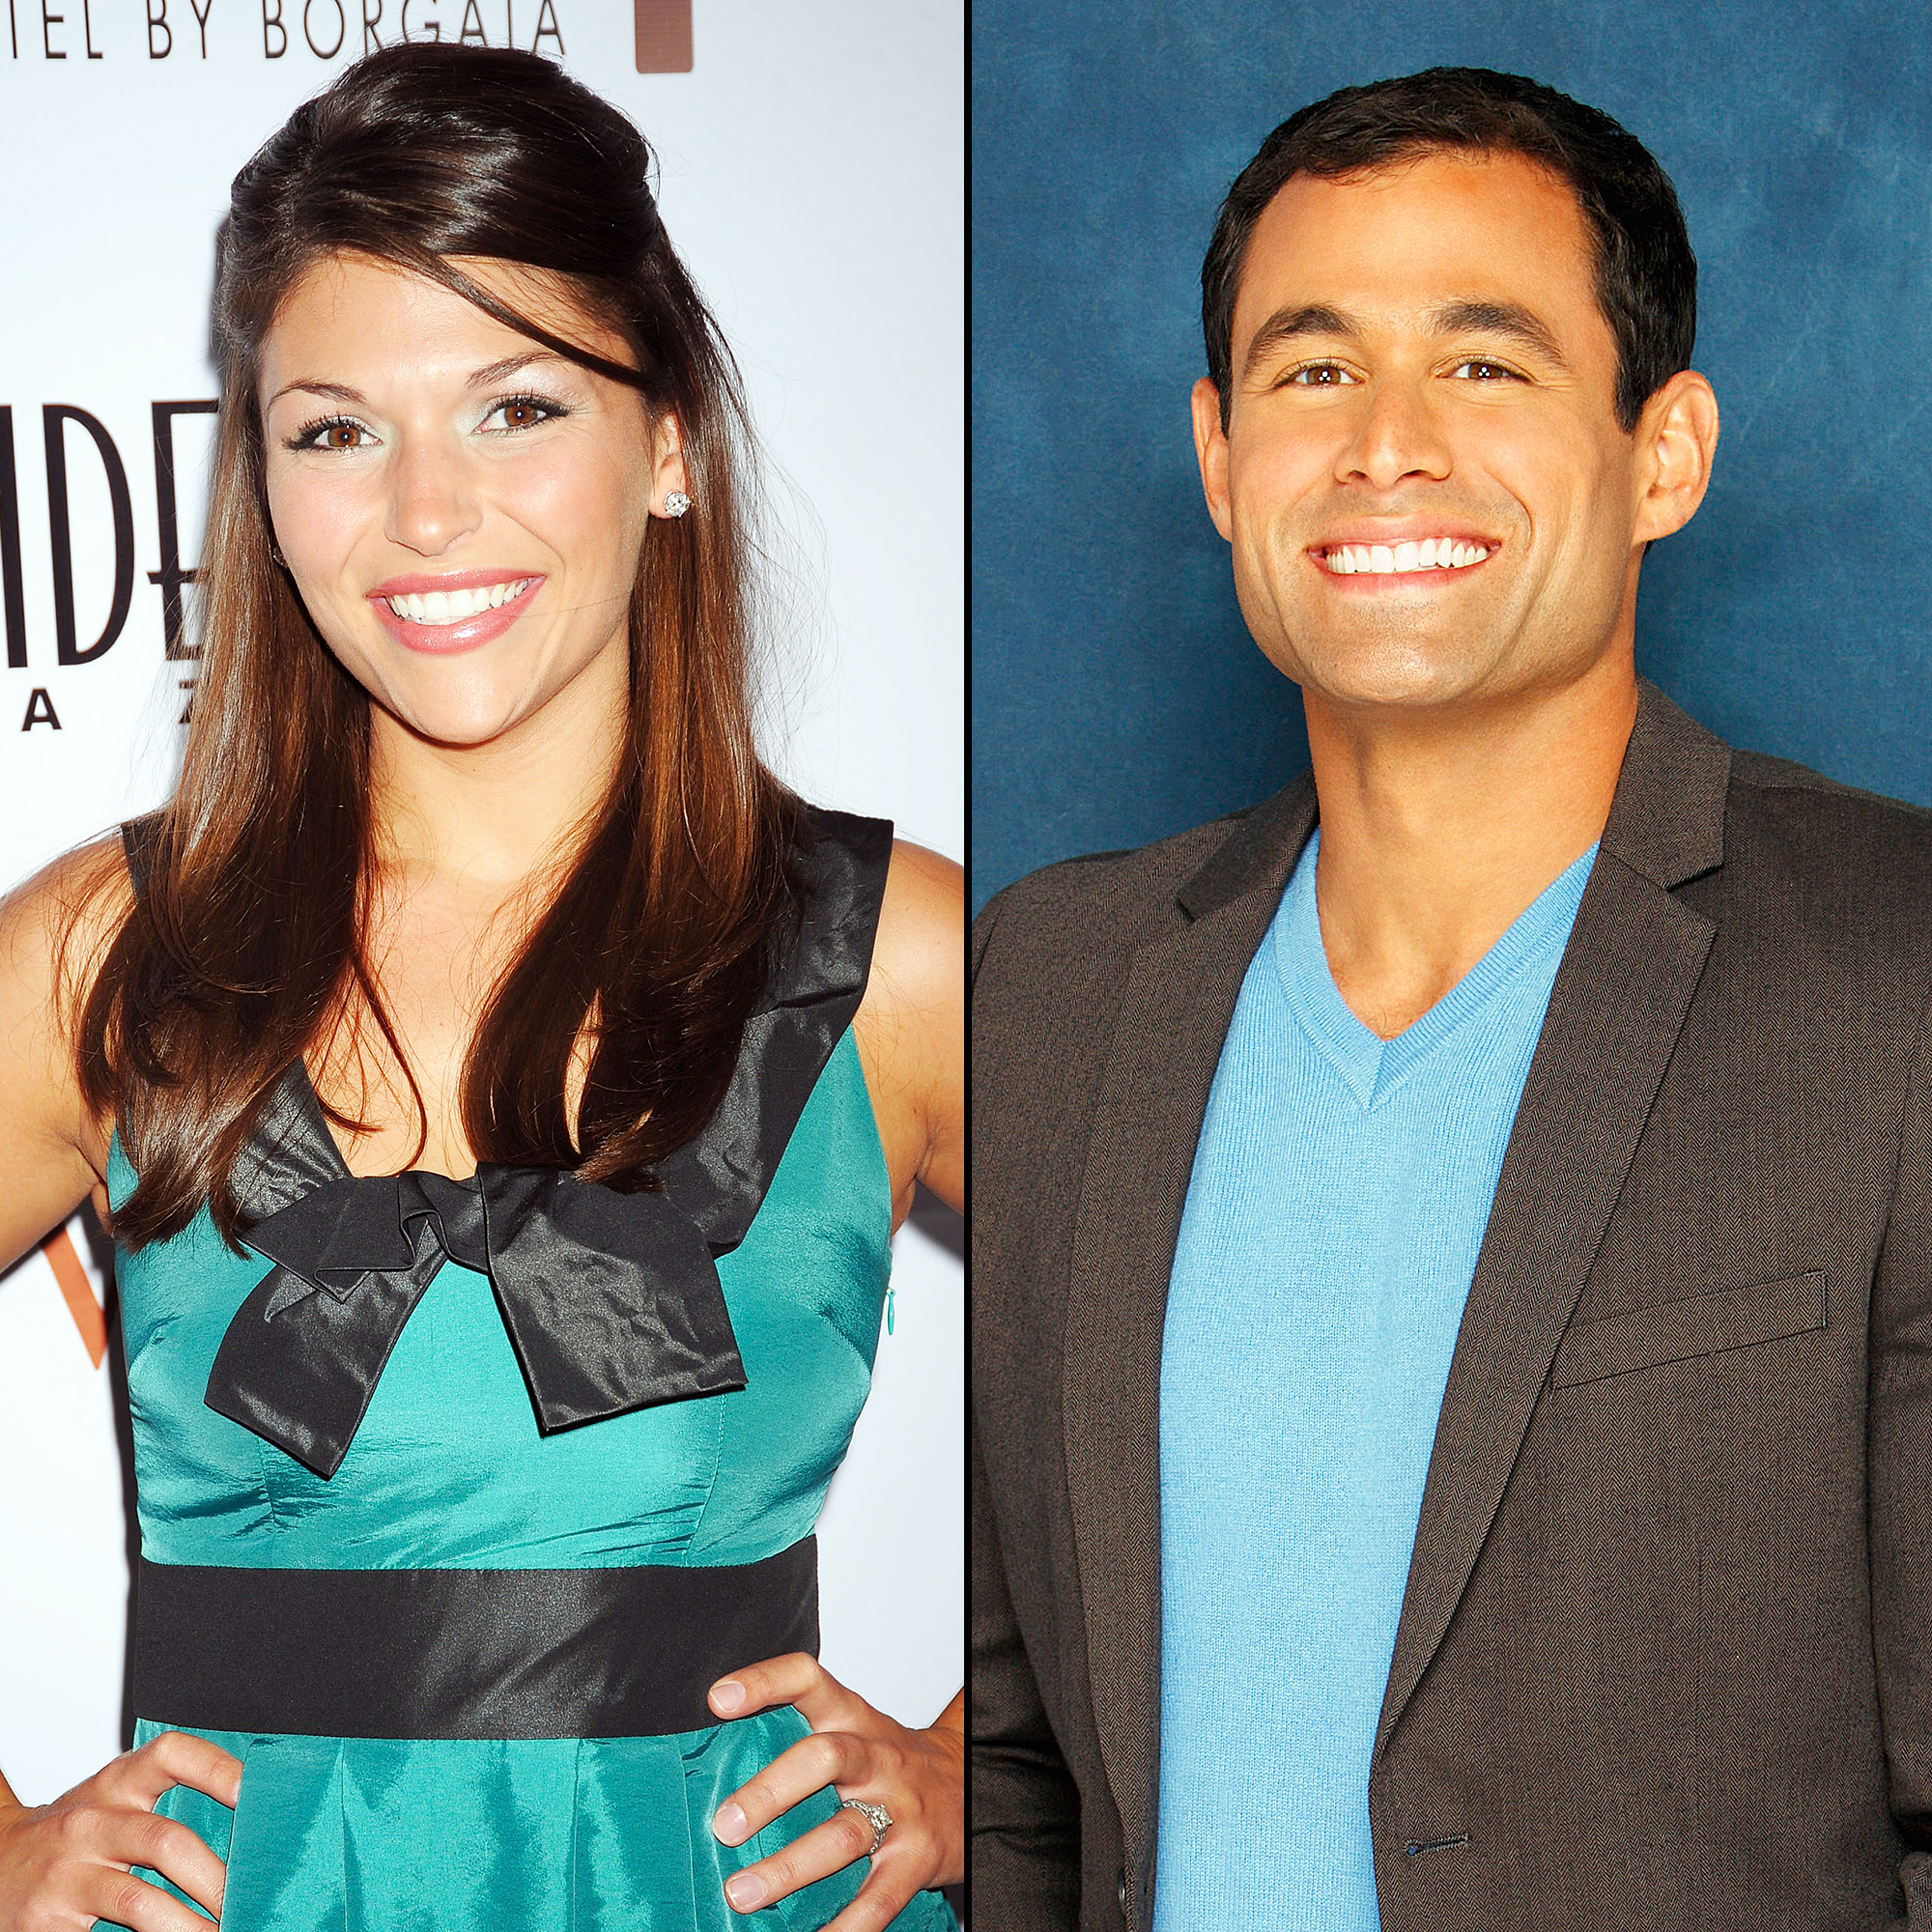 DeAnna Pappas Shares Daughters Response to Seeing Her Kiss Jason Mesnick in Bachelorette Clip